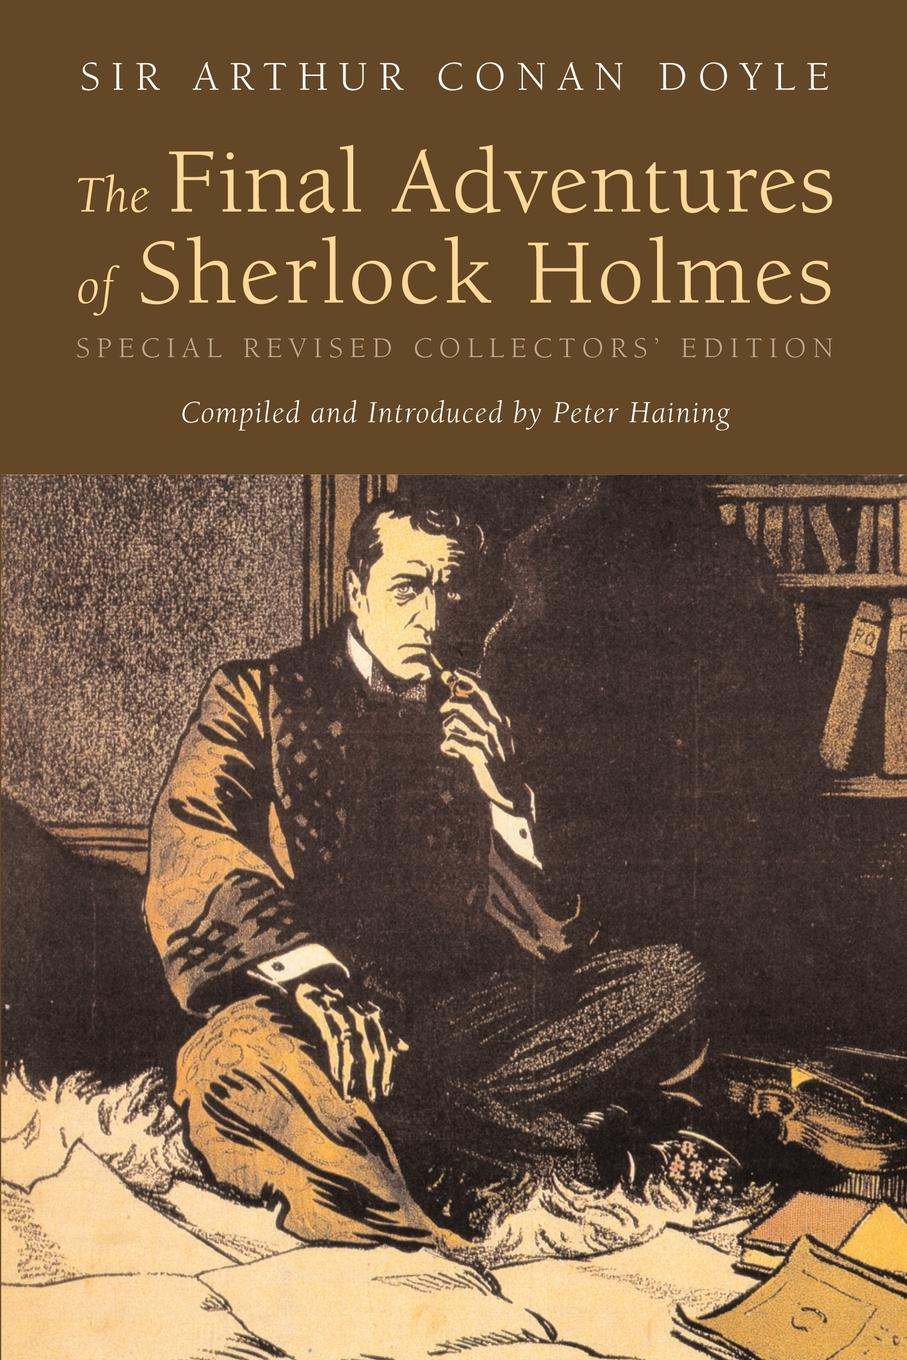 The Final Adventures of Sherlock Holmes elex collector s edition